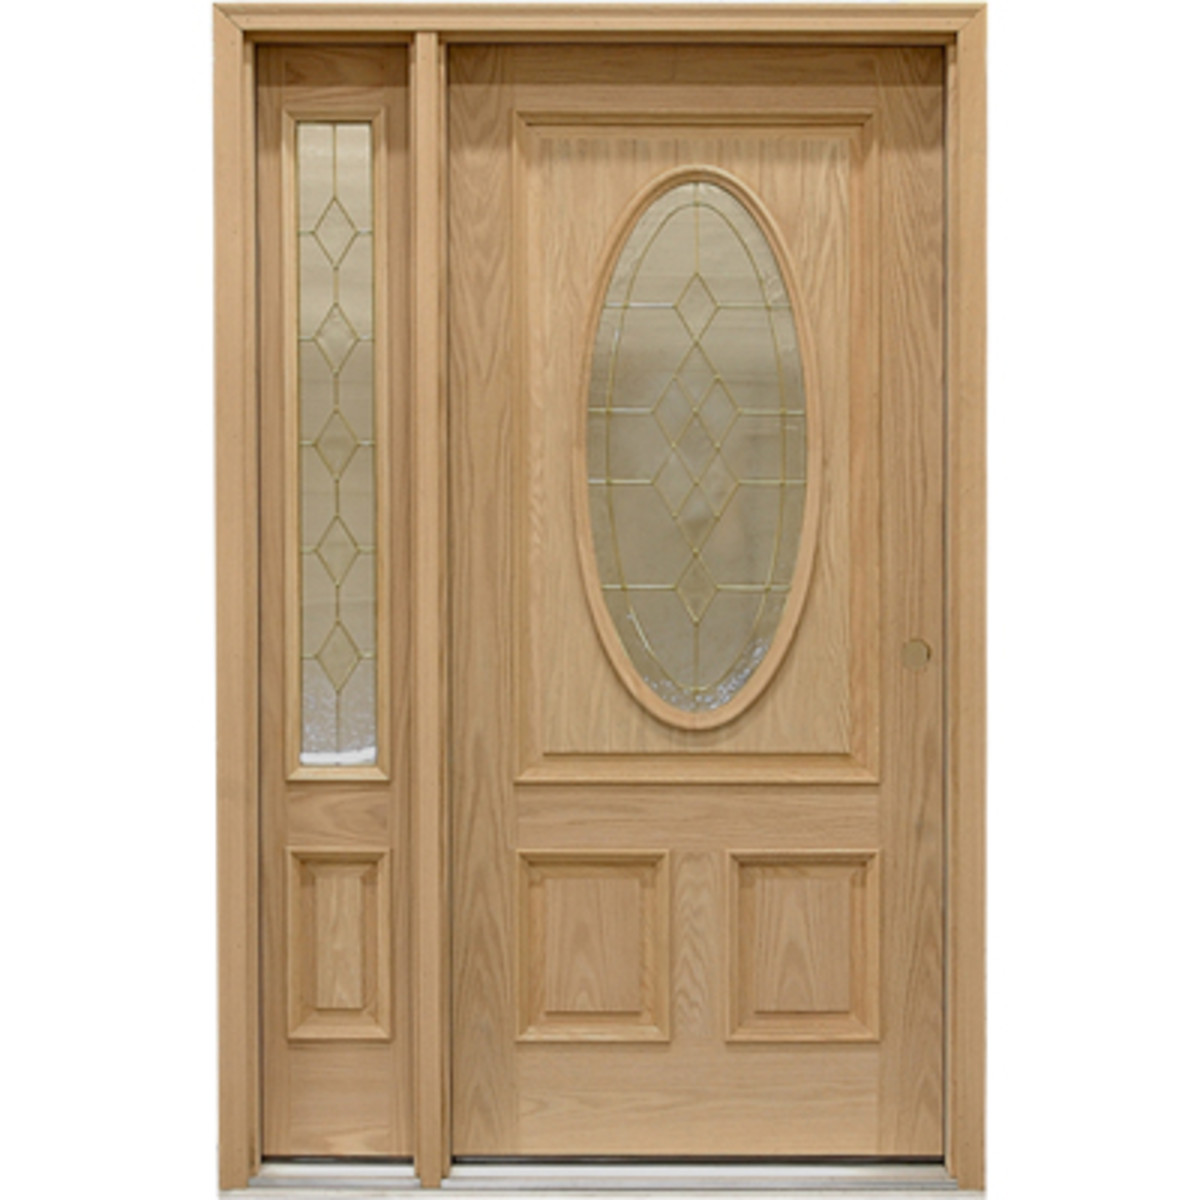 Oak door with one sidelight by bargainoutlet.com